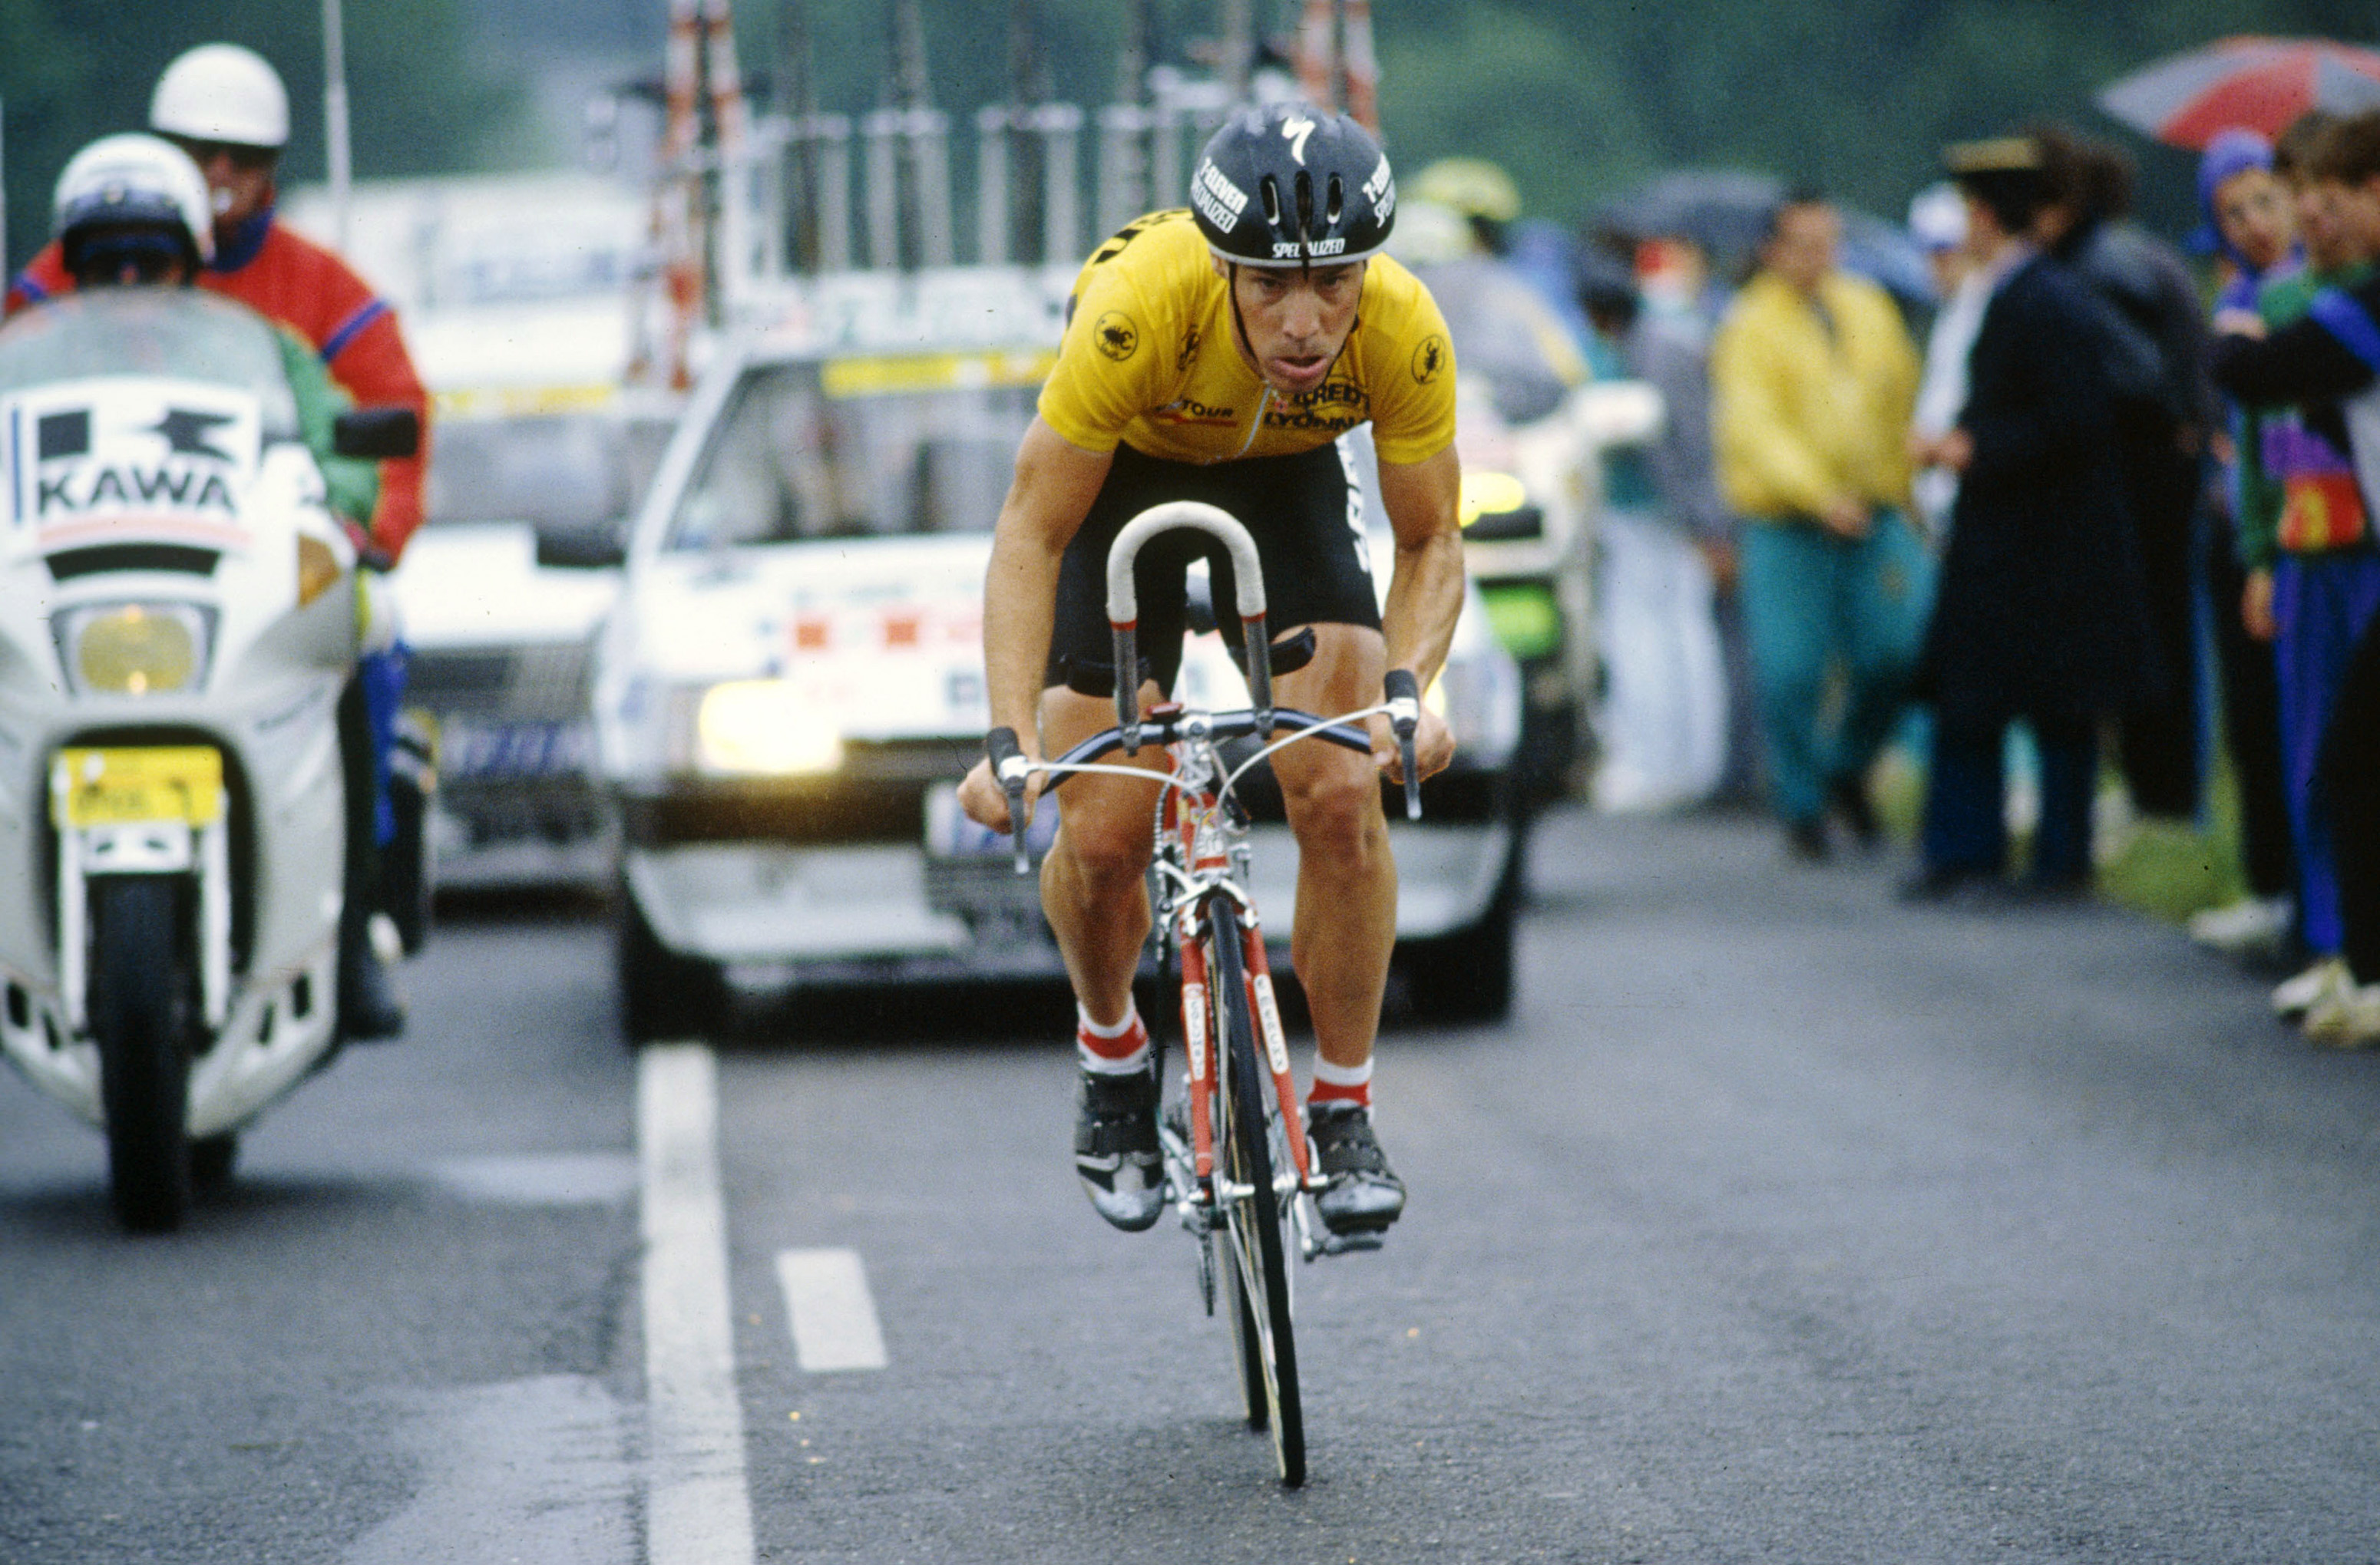 Steve Bauer in the yellow jersey at the 1990 Tour de France